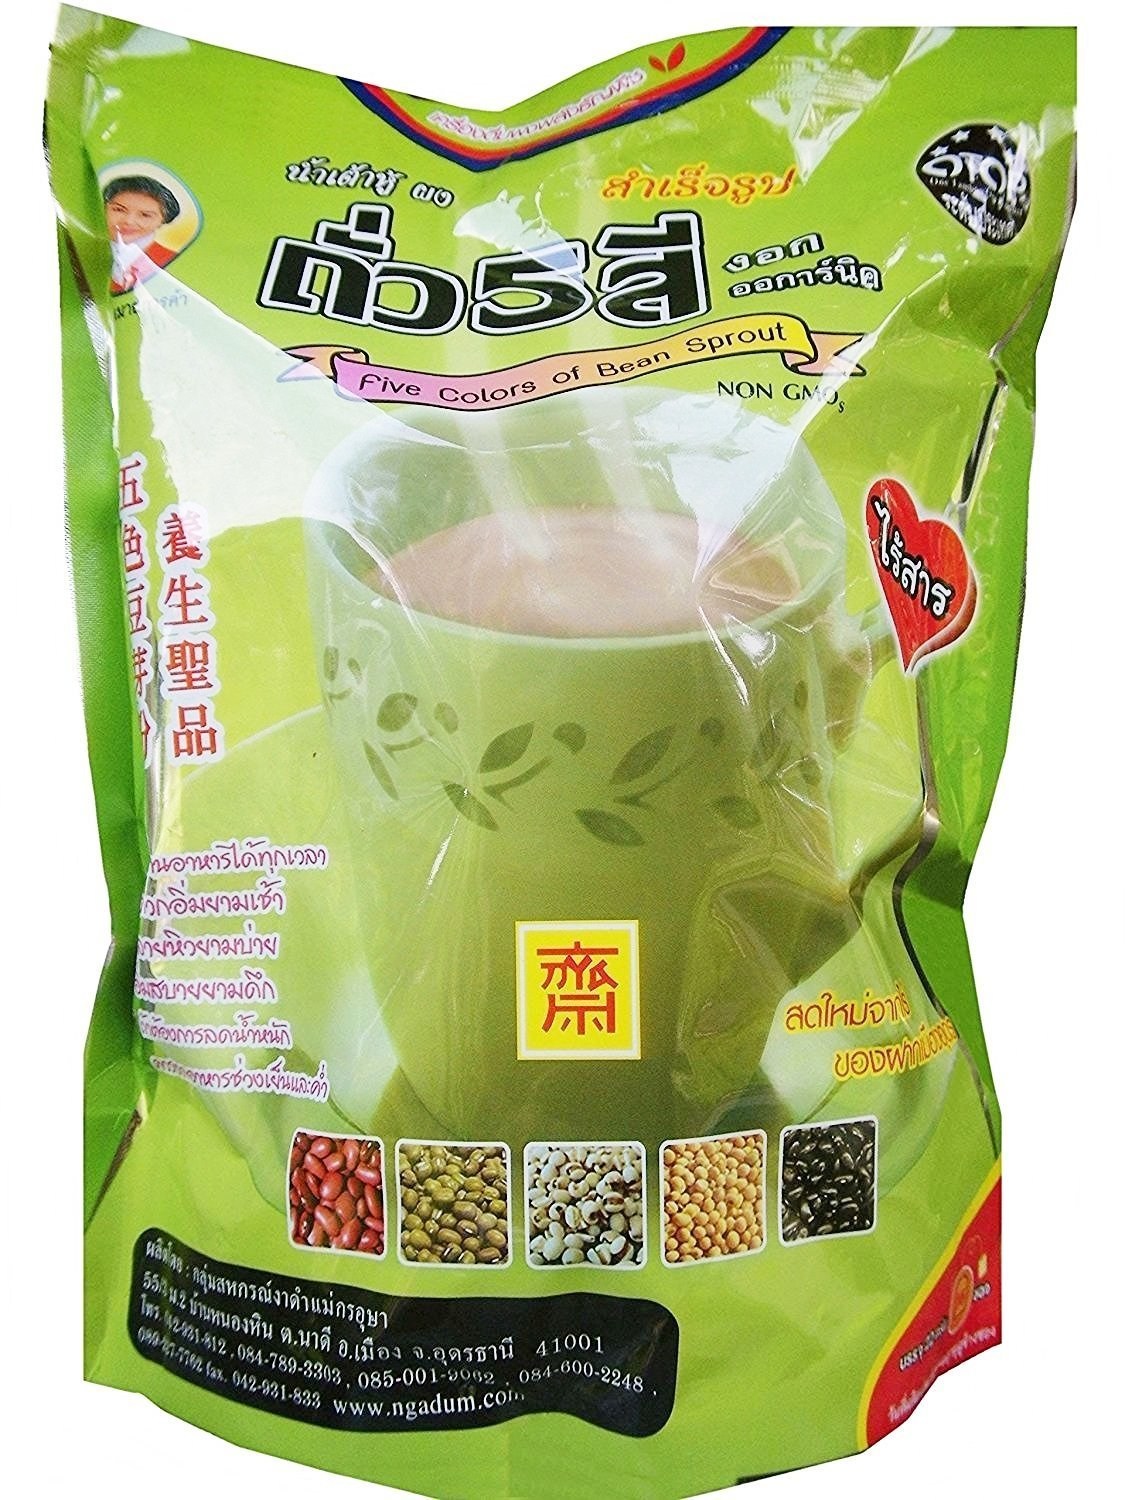 Mea Usa Instant Cereal Drink - 5 Colors of Beans Powder (Healthy Formula) 352g, (22 g x 16 Sachets) by Mea Usa